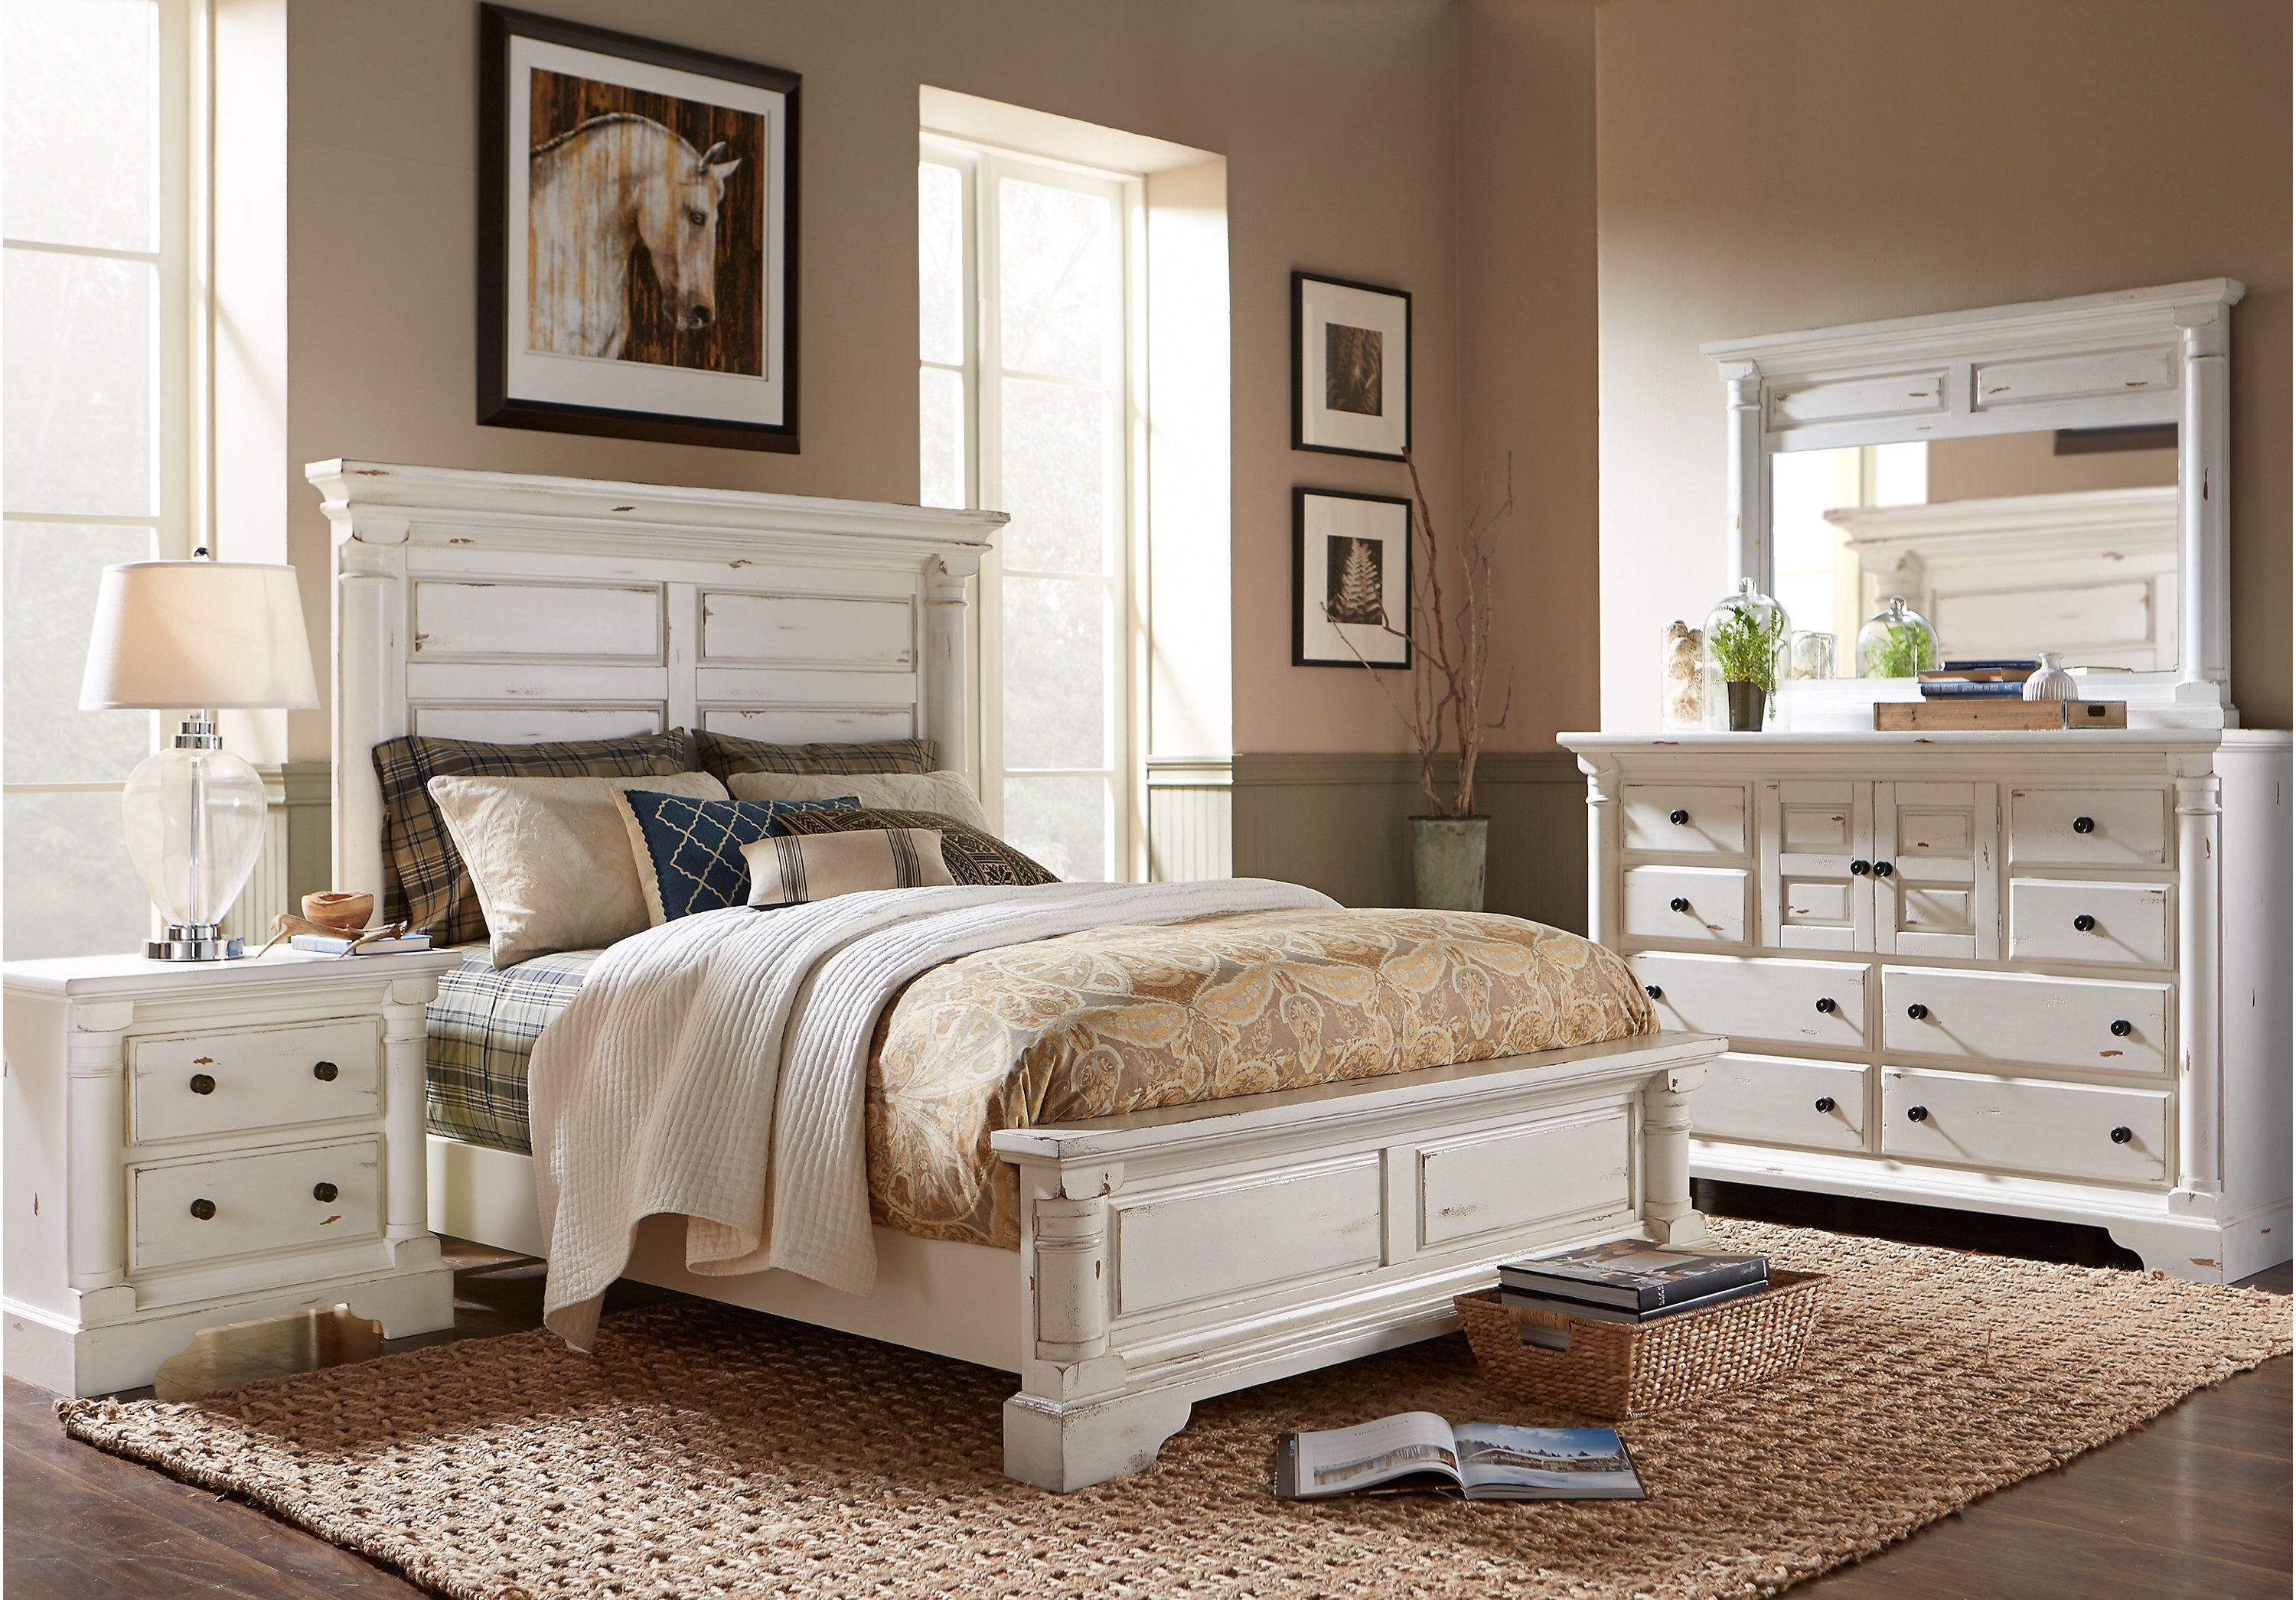 Rooms to Go Bedroom Furniture Sale Luxury Bedroom Charming Roomstogokids with Beautiful Decor for